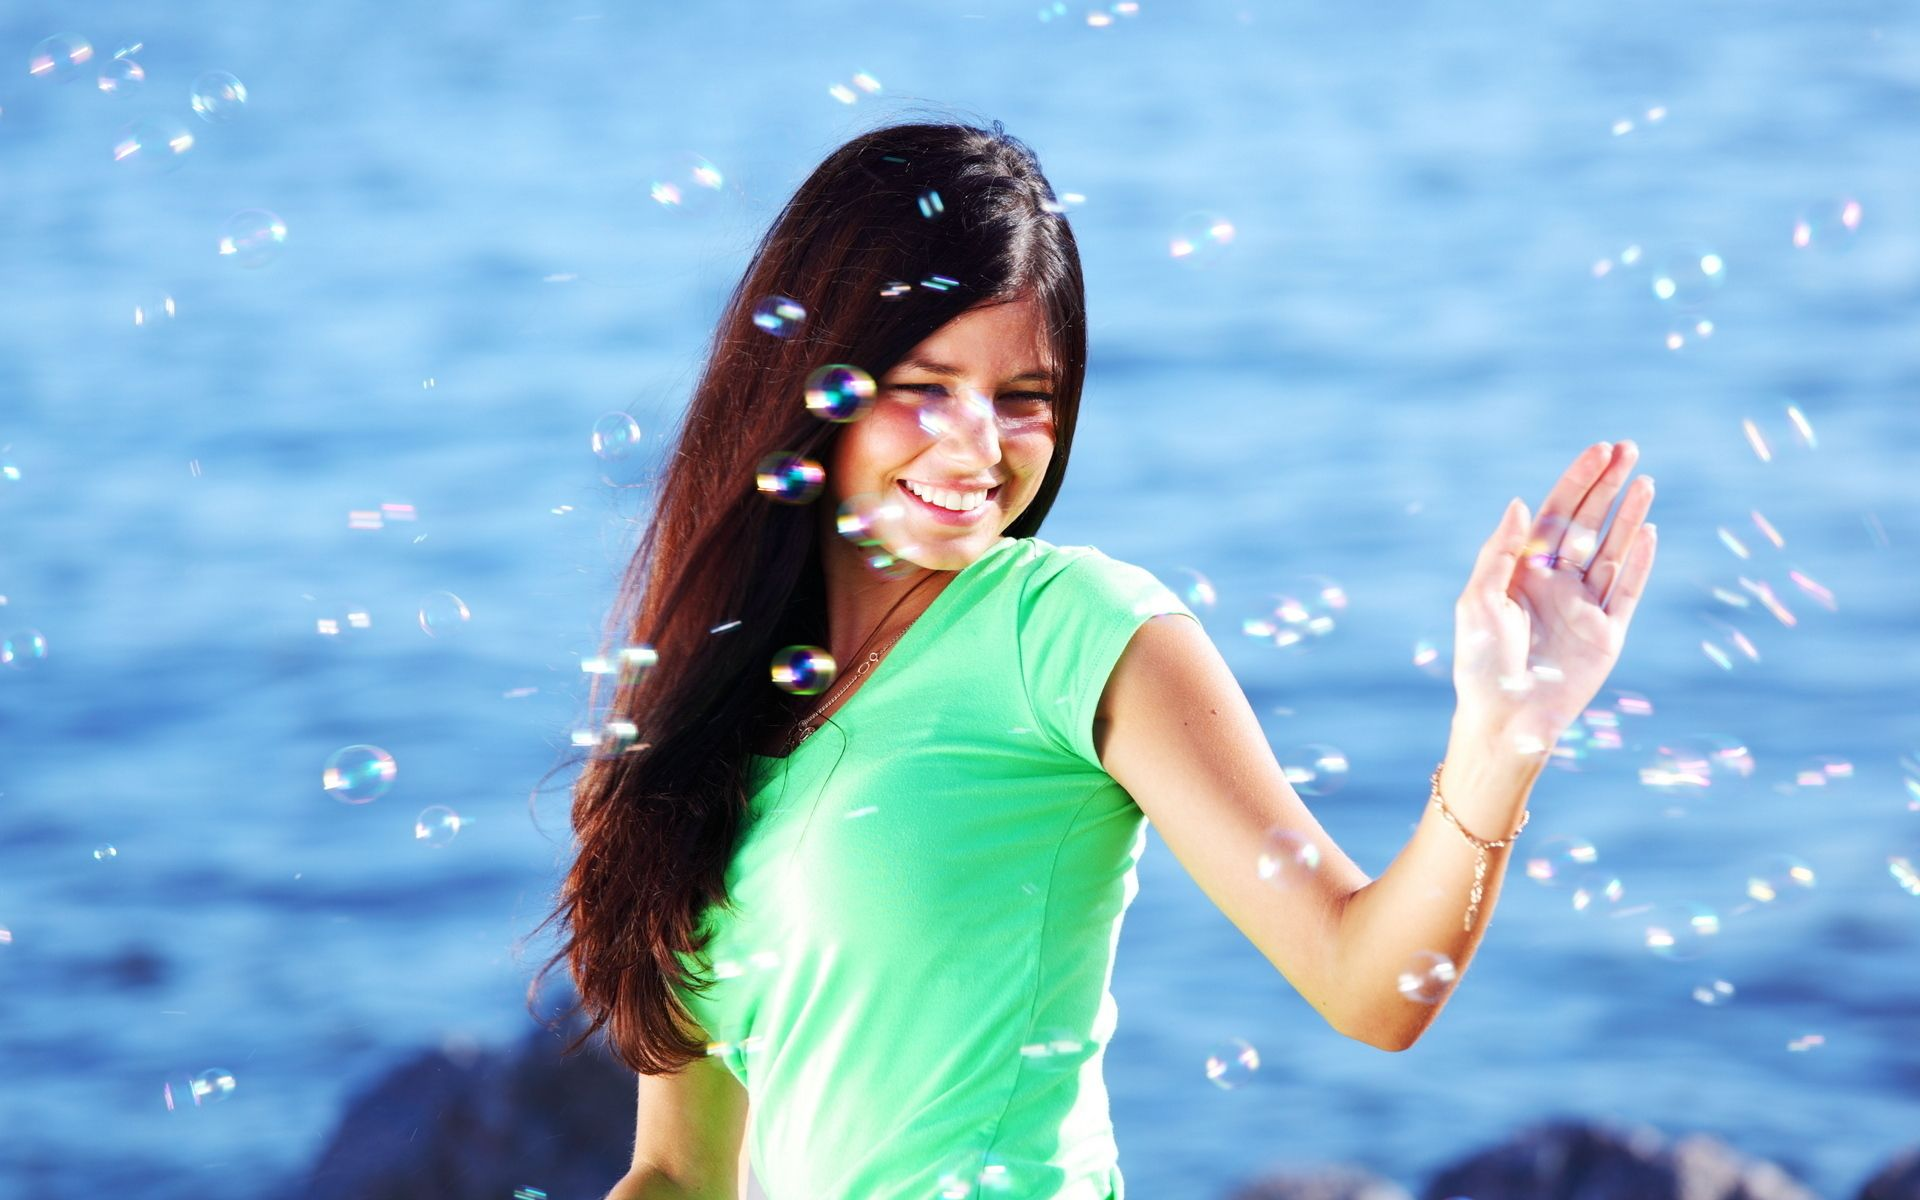 10 scientifically proven ways to be incredibly happy